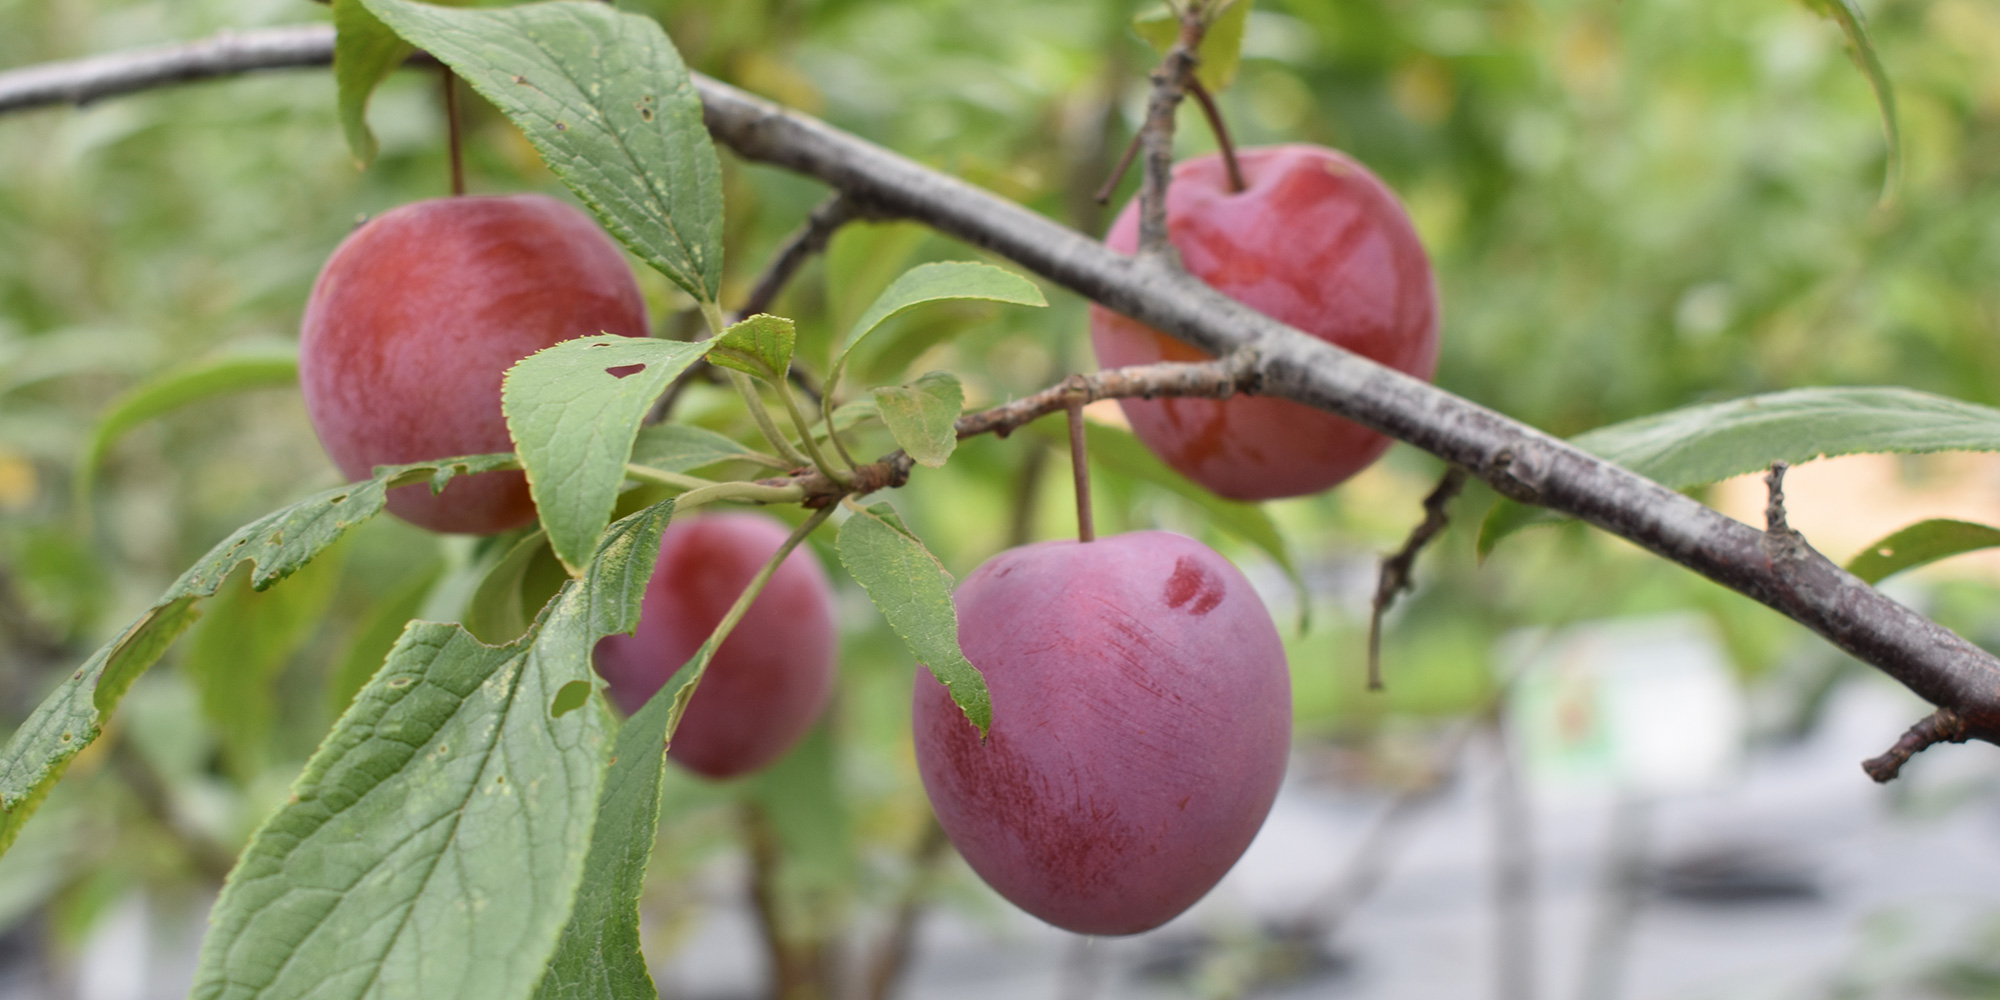 Maroon plums on branches of tree